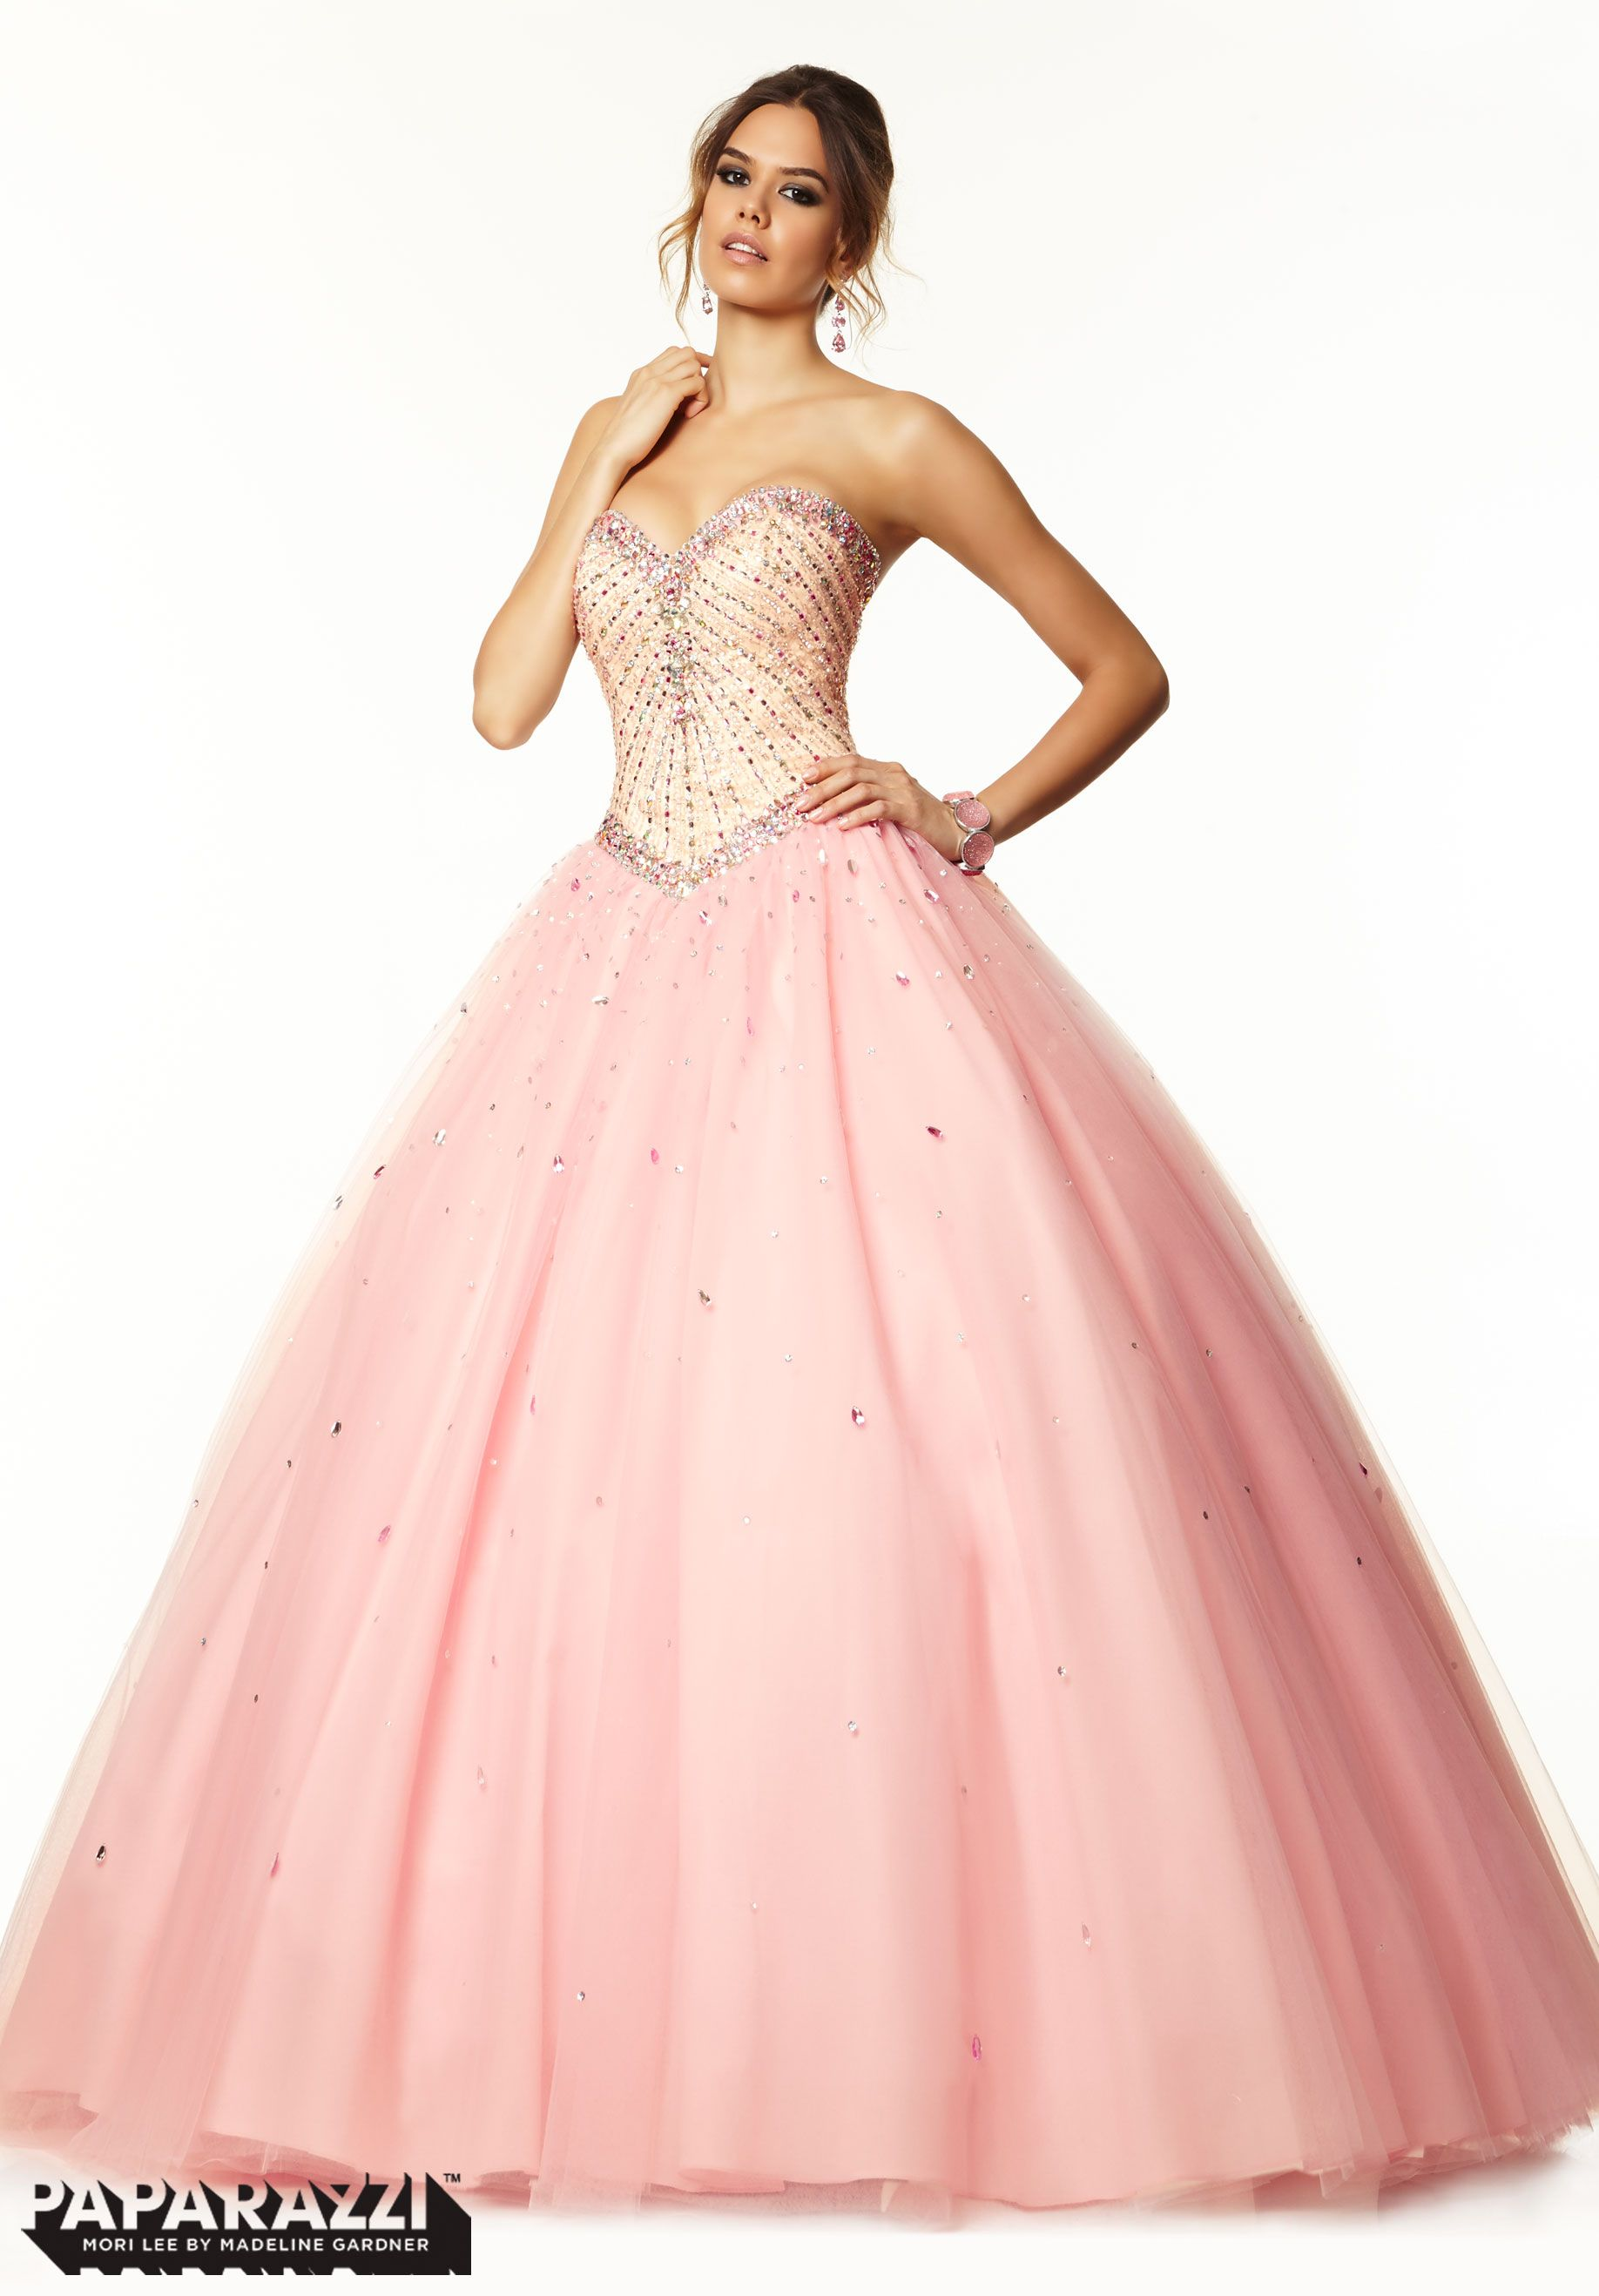 97017 Prom Dresses Paparazzi available at Monis Bridal and Fashion ...